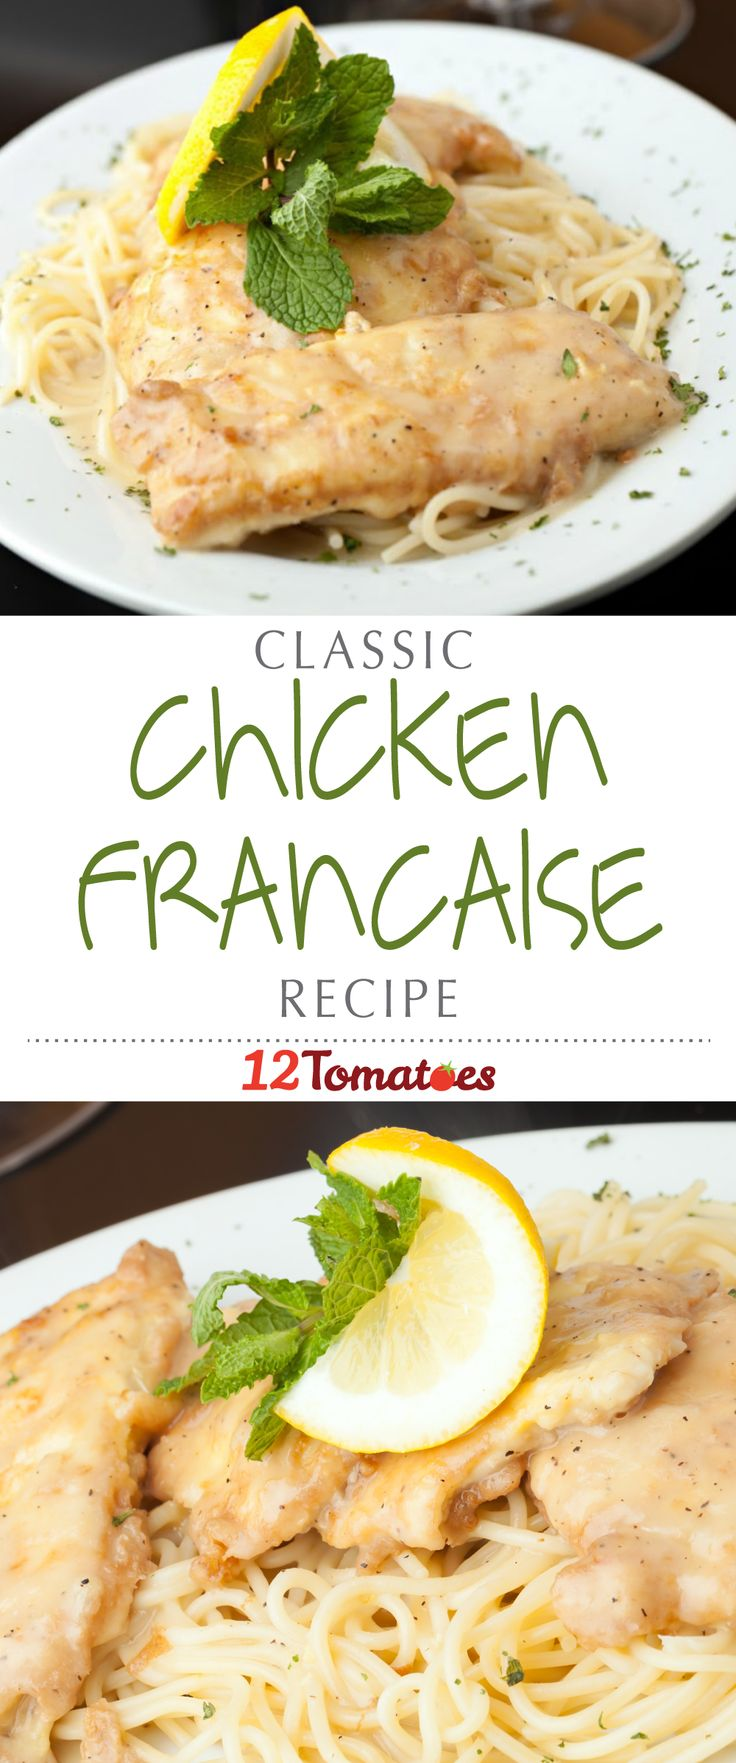 Classic Chicken Francaise | Deliciously fried chicken breasts served over spaghetti with a bright and citrusy, white wine sauce…it doesn't get any better than that!